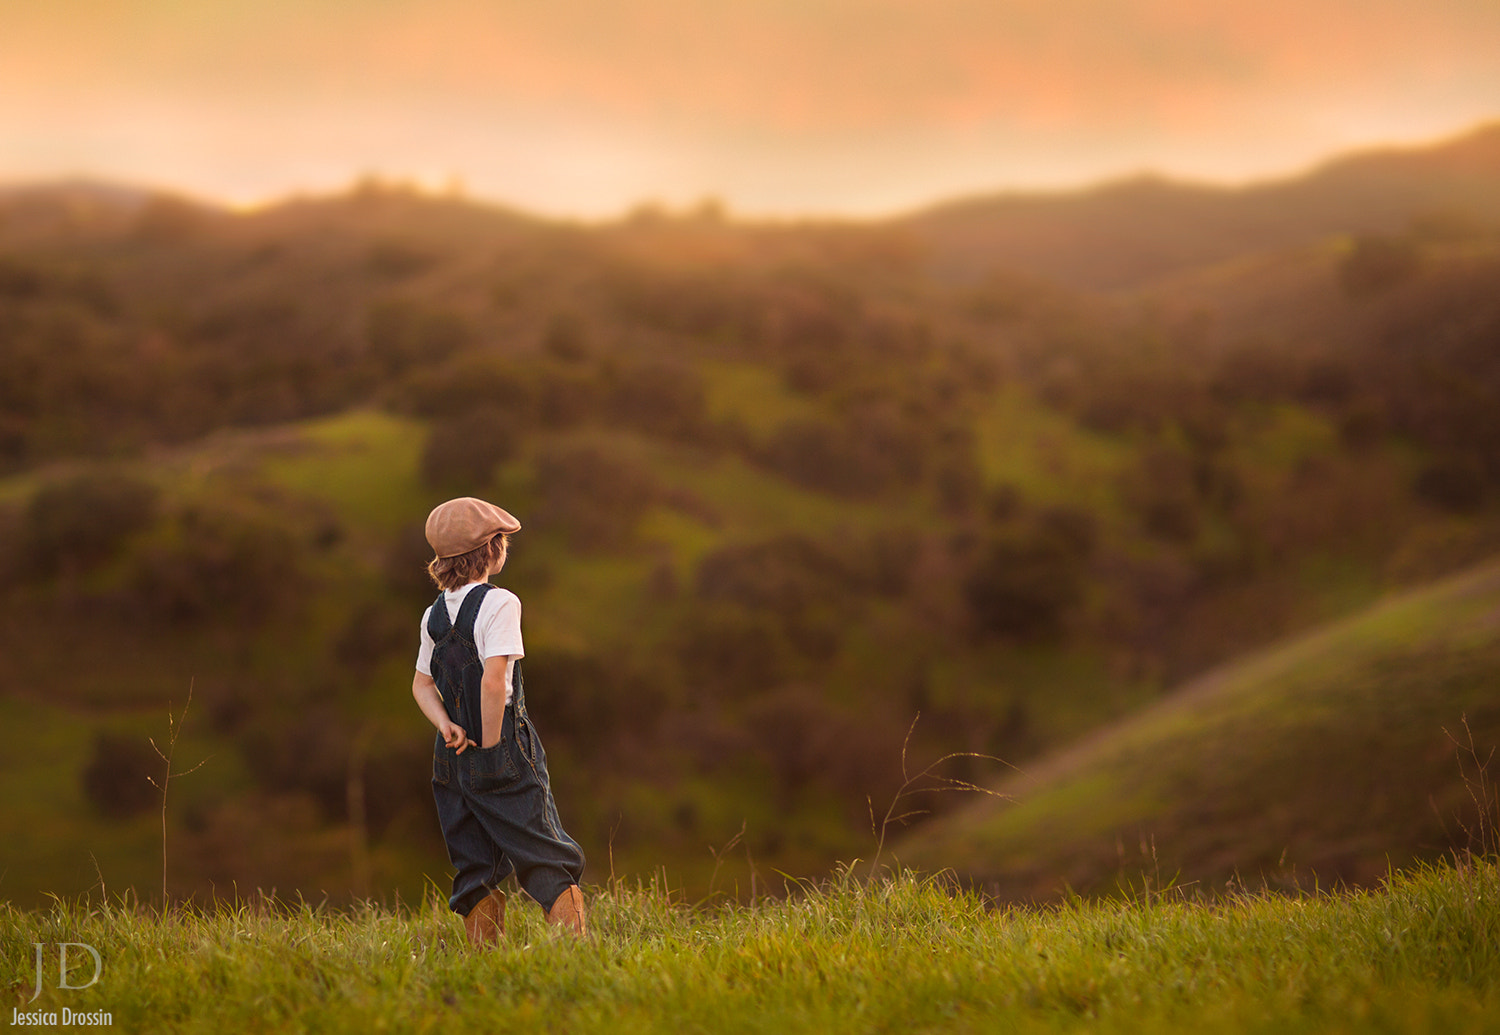 Photo The View par Jessica Drossin on 500px